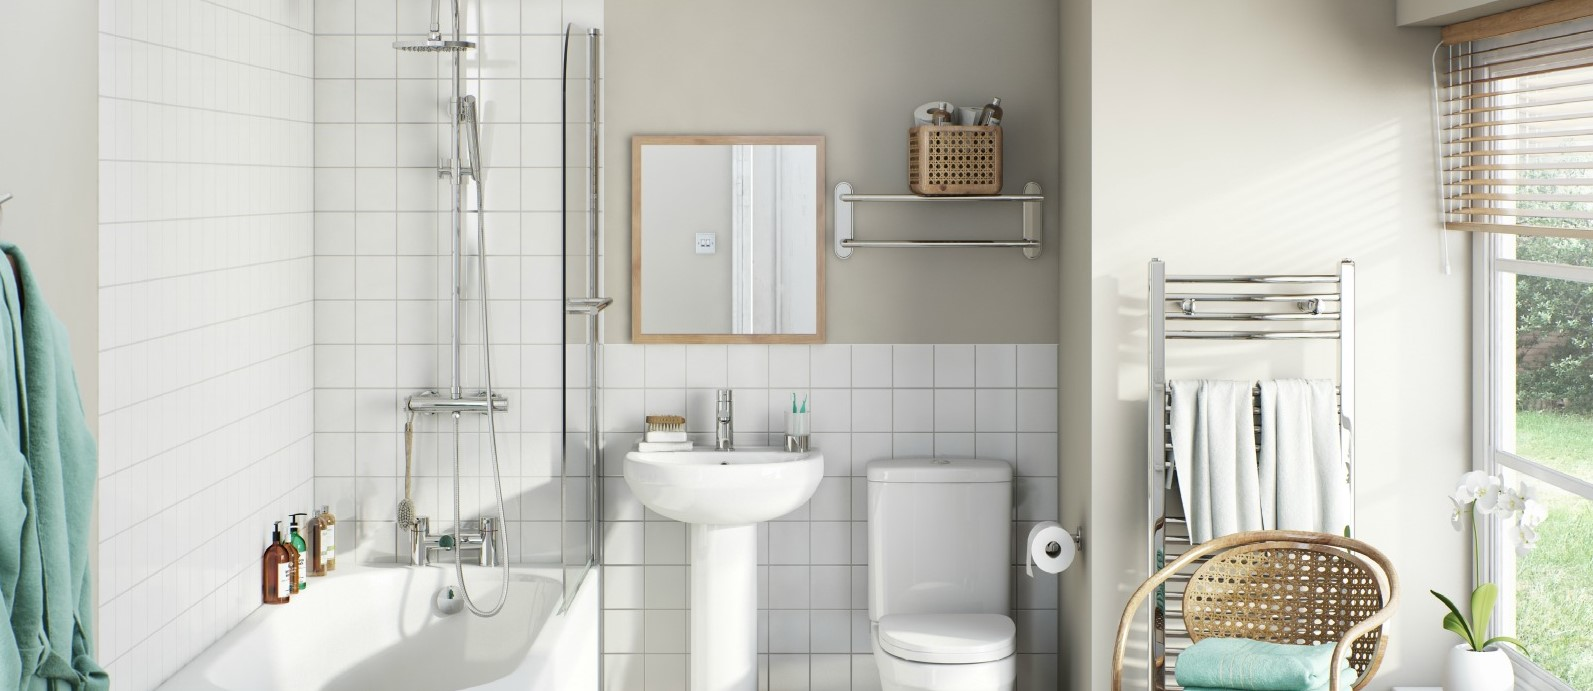 100 36 bathroom vanity with top bathrooms design inch for Bathroom planner in feet and inches